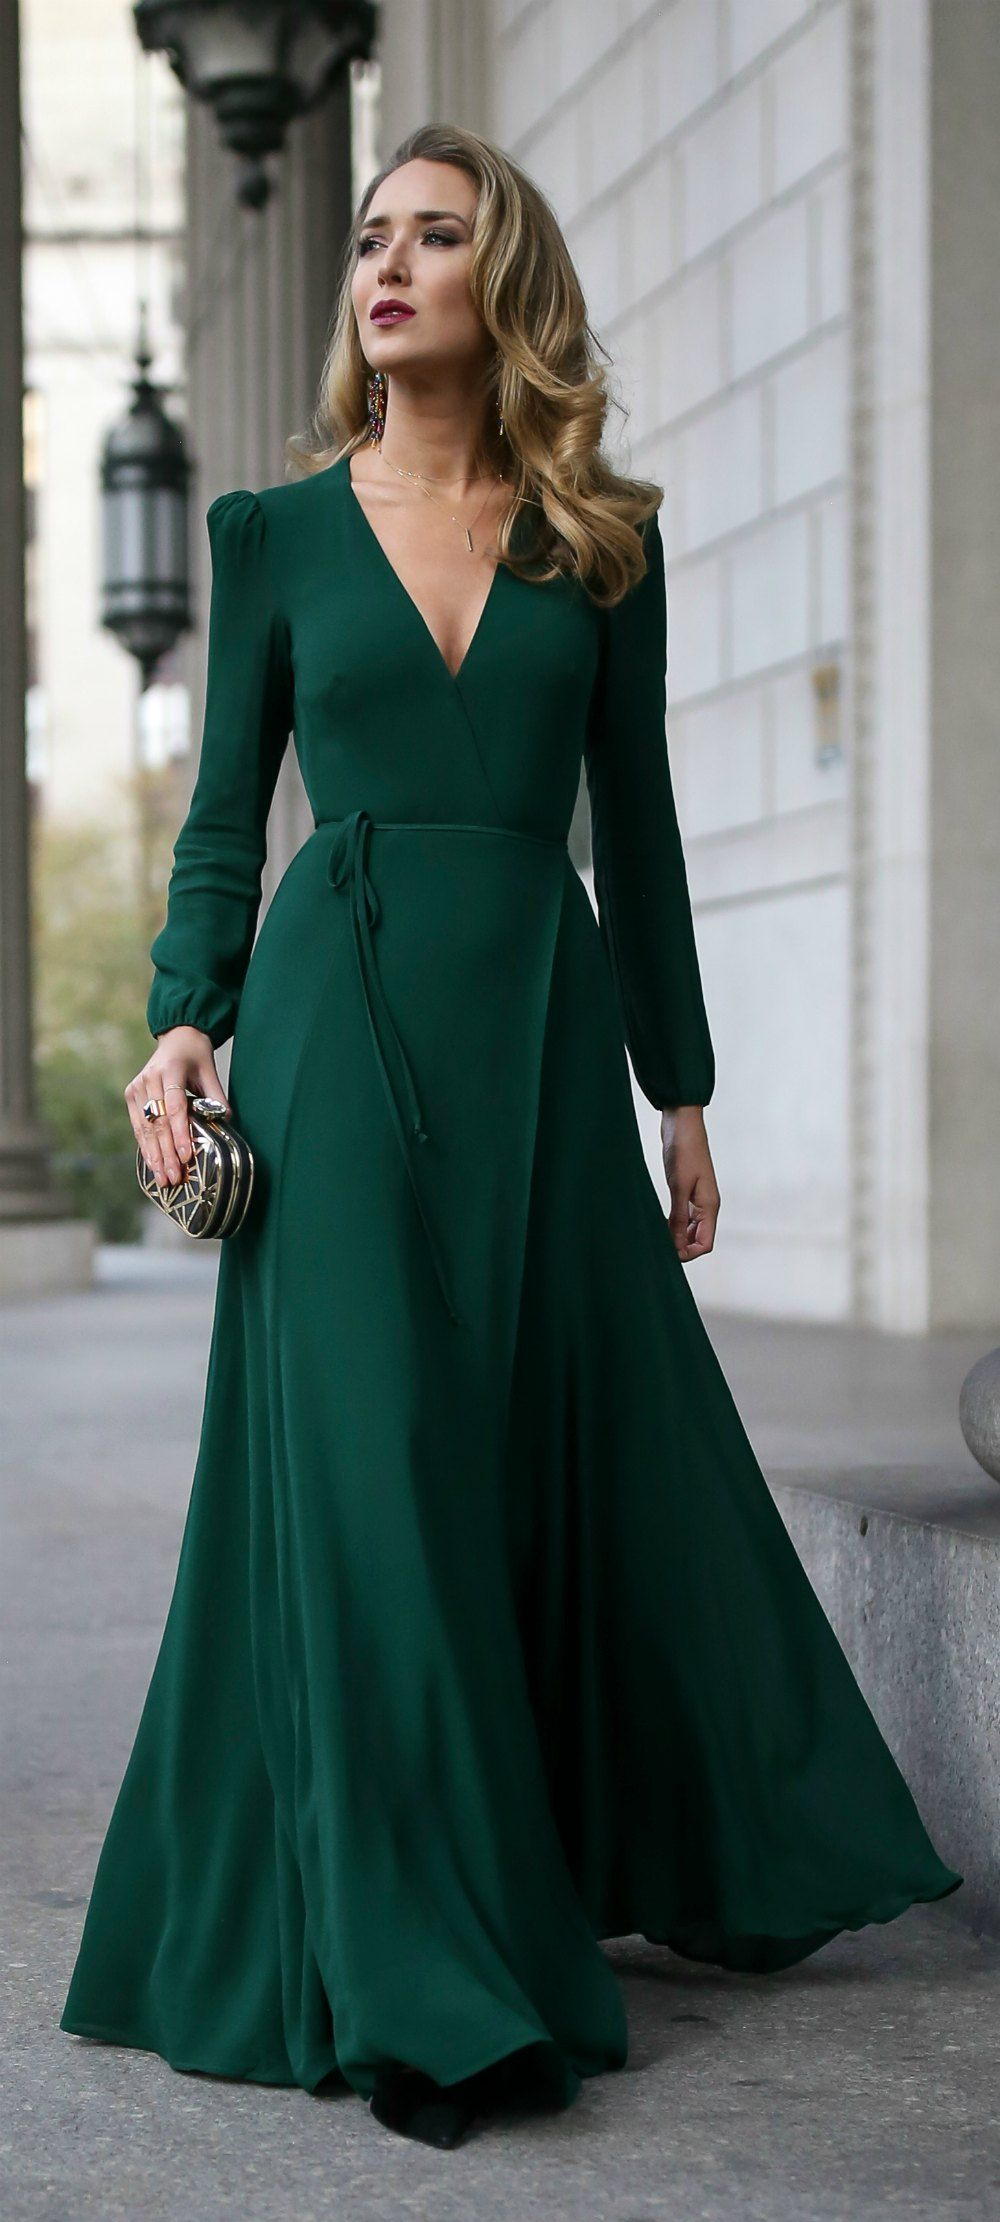 30 Dresses In 30 Days Fall/Winter 2017 Black Tie Wedding